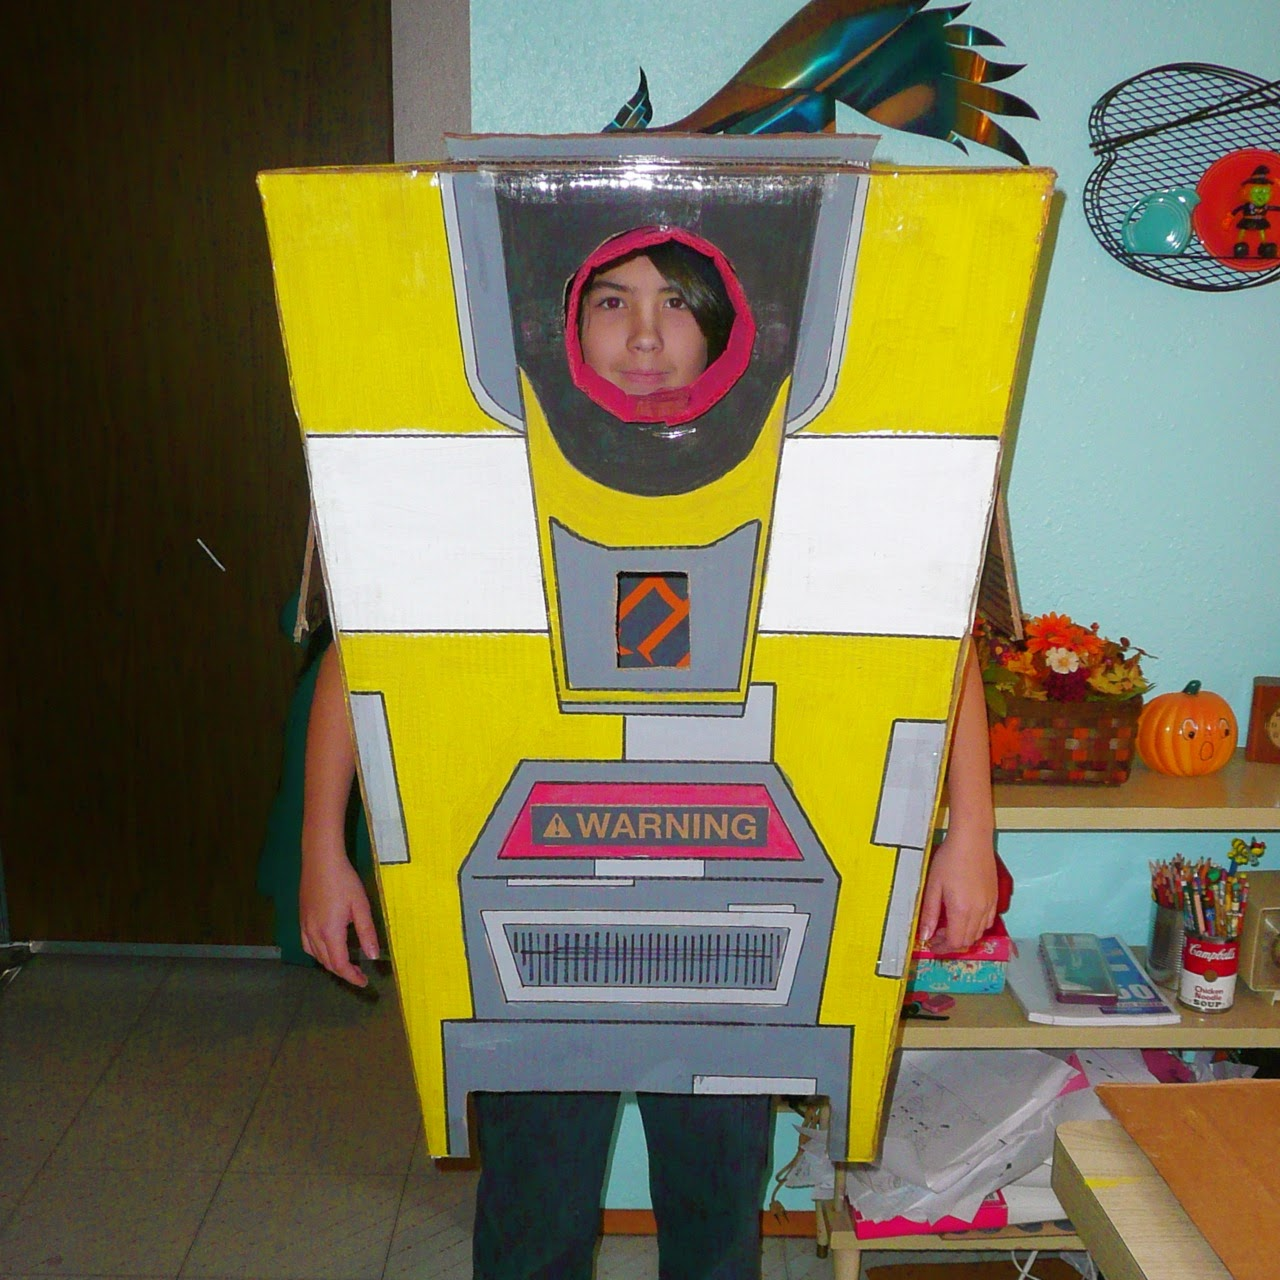 costume, cardboard, appliance box, borderlands video game, robot, cosplay, fall